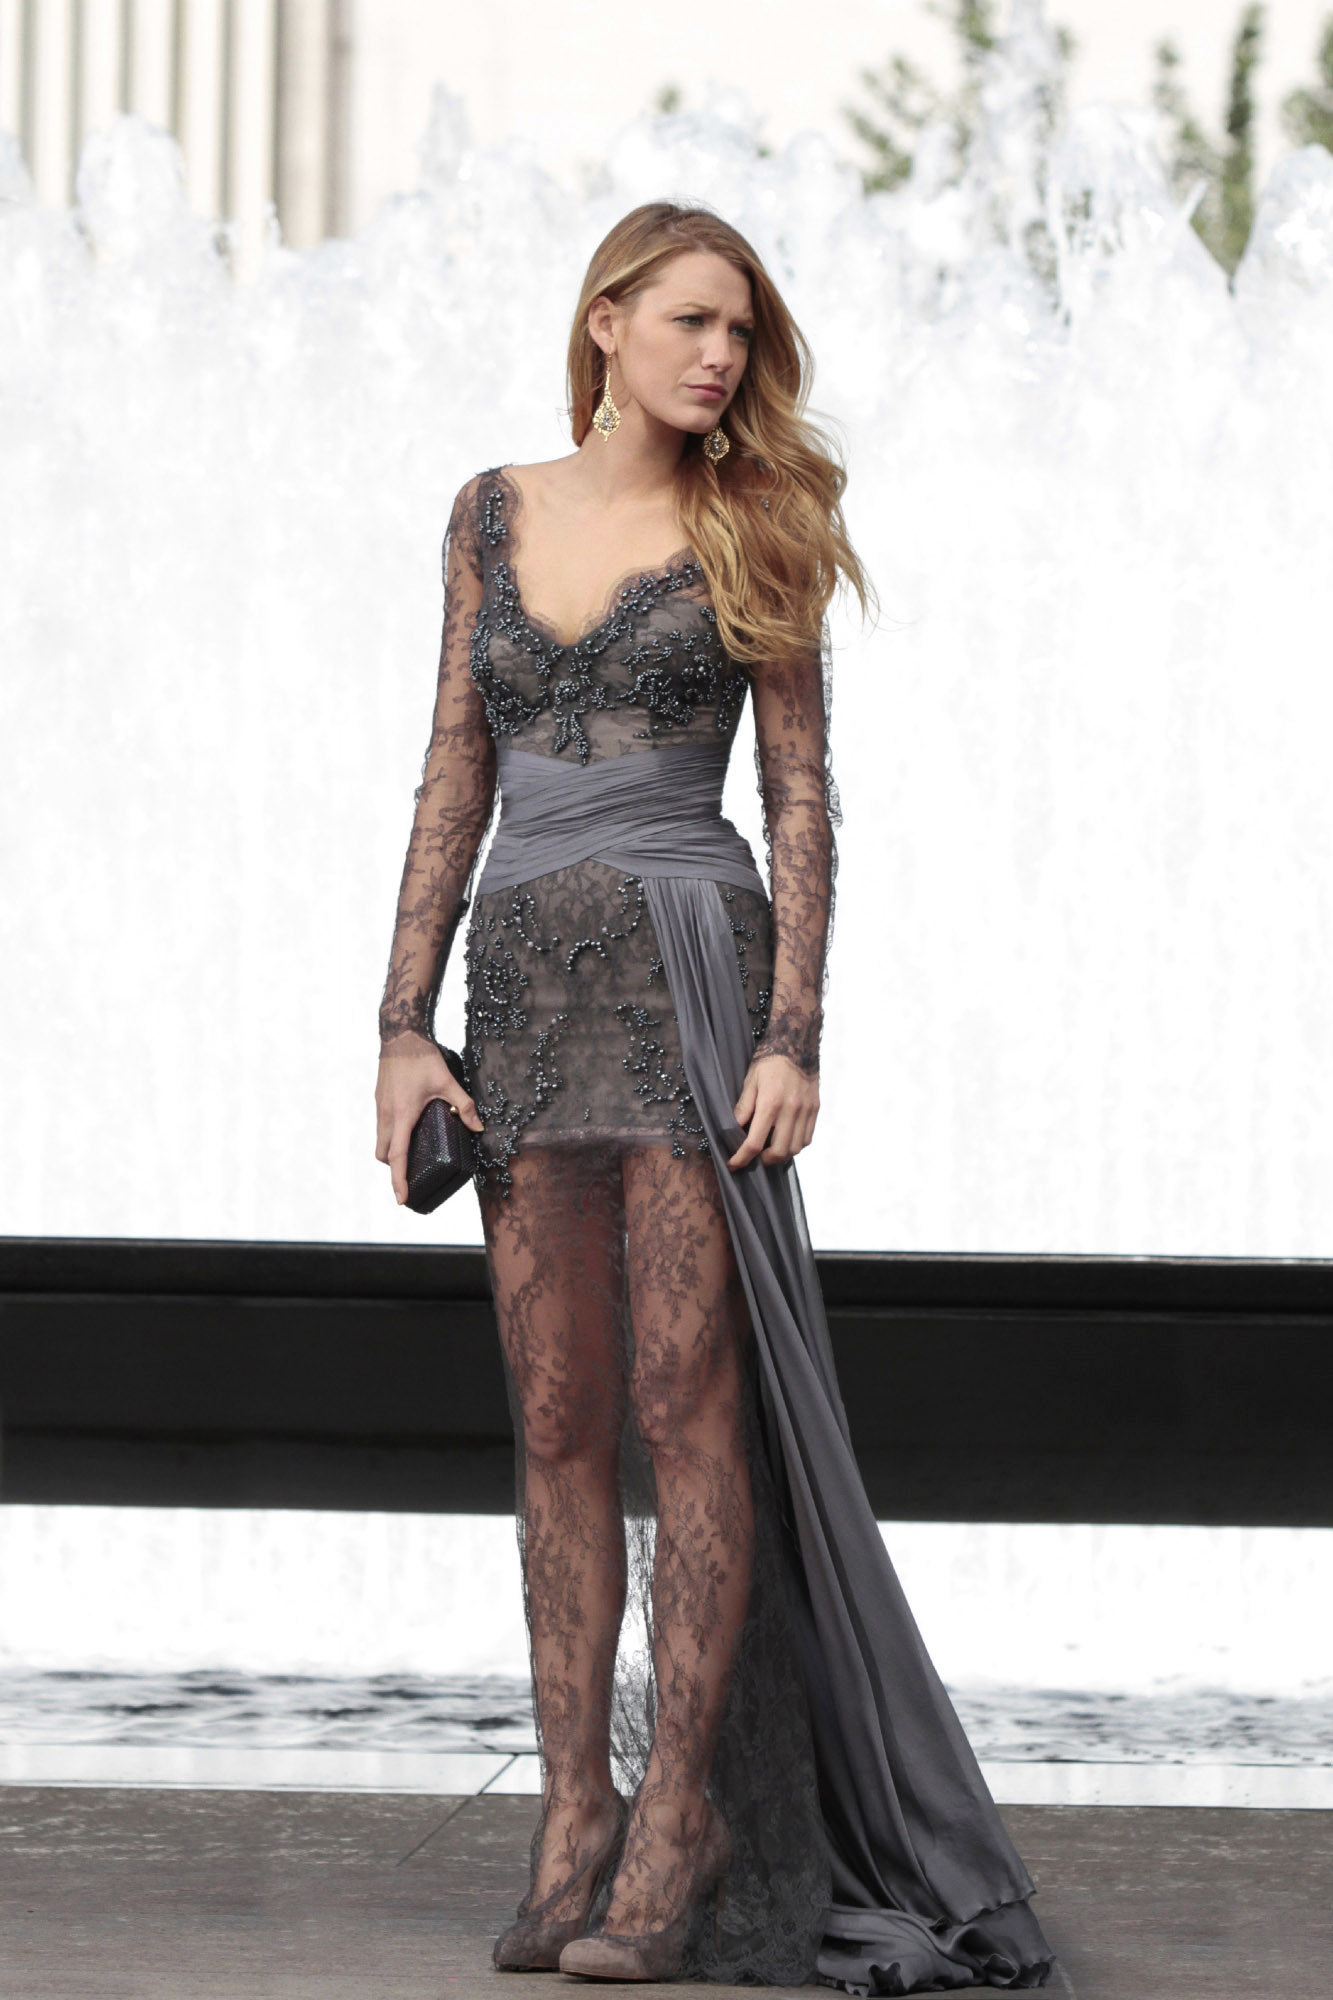 Serena in deep v long sheer sleeve dress with embroidered beading, a short tight skirt, and sheer lace long skirt, with a wrap belt that goes into a sash